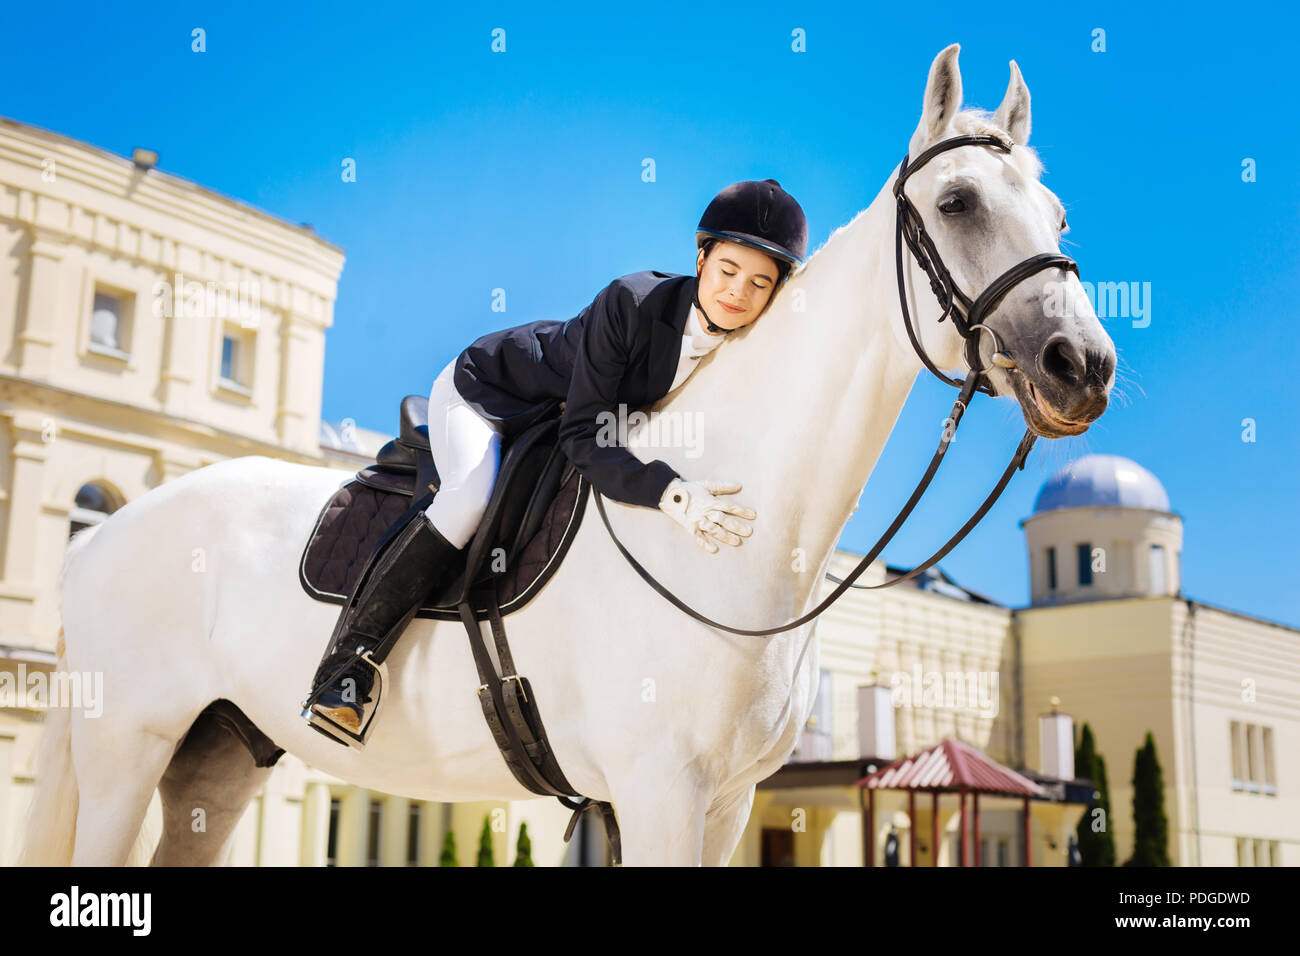 Businesswoman fond of equestrianism hugging her white horse - Stock Image